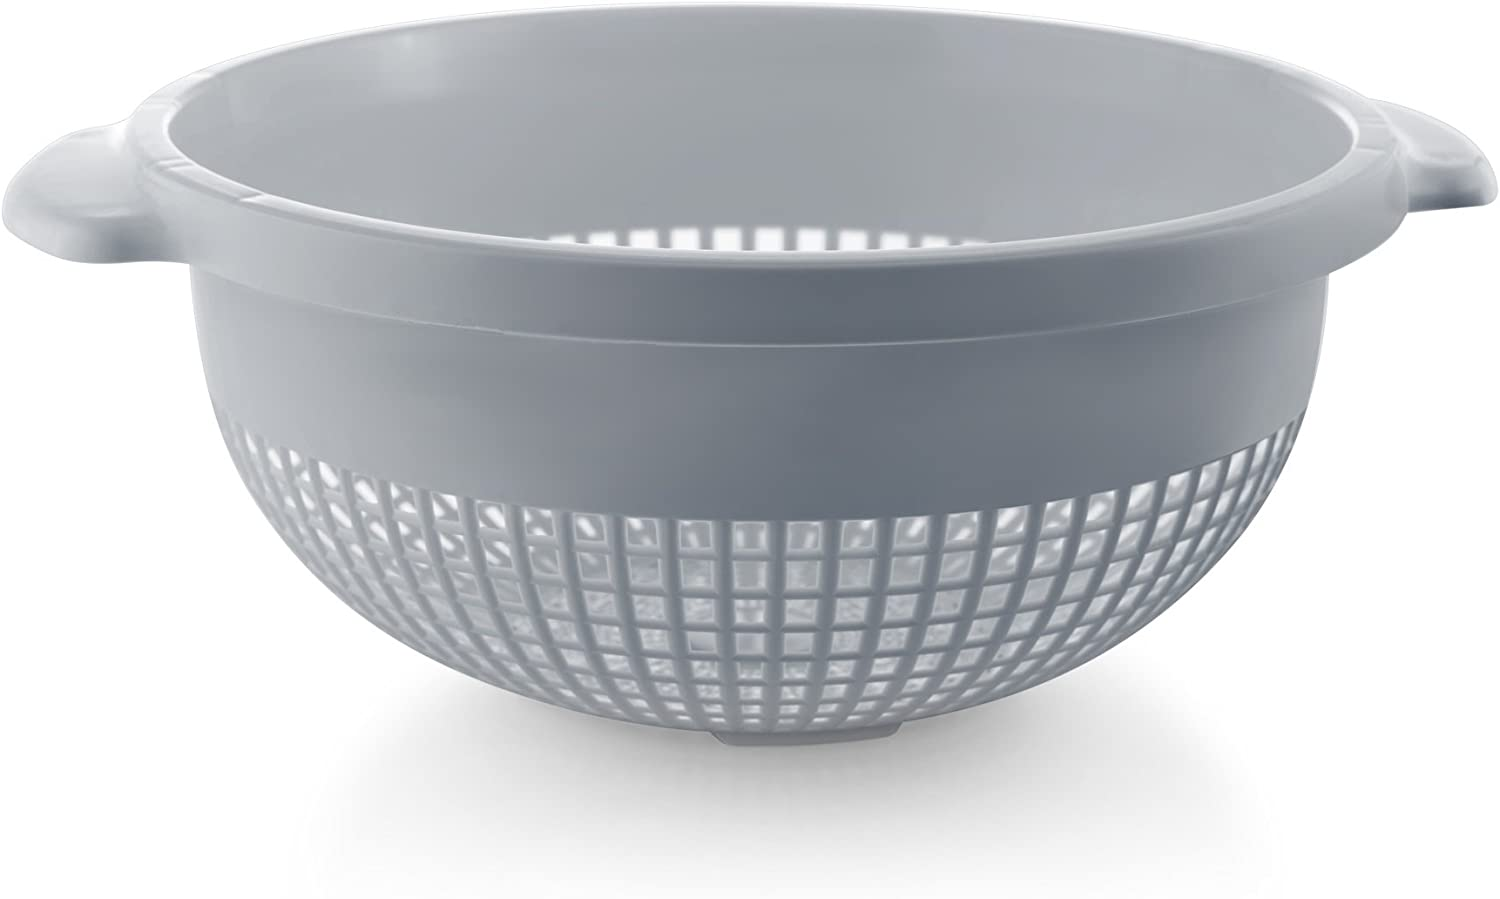 YBM Home 14 Inch Plastic Strainer and Colander with Handle for Pasta, Spaguetti, Noodles, Vegetables and More, Dishwasher Safe 31-1128-gray (1, Gray)